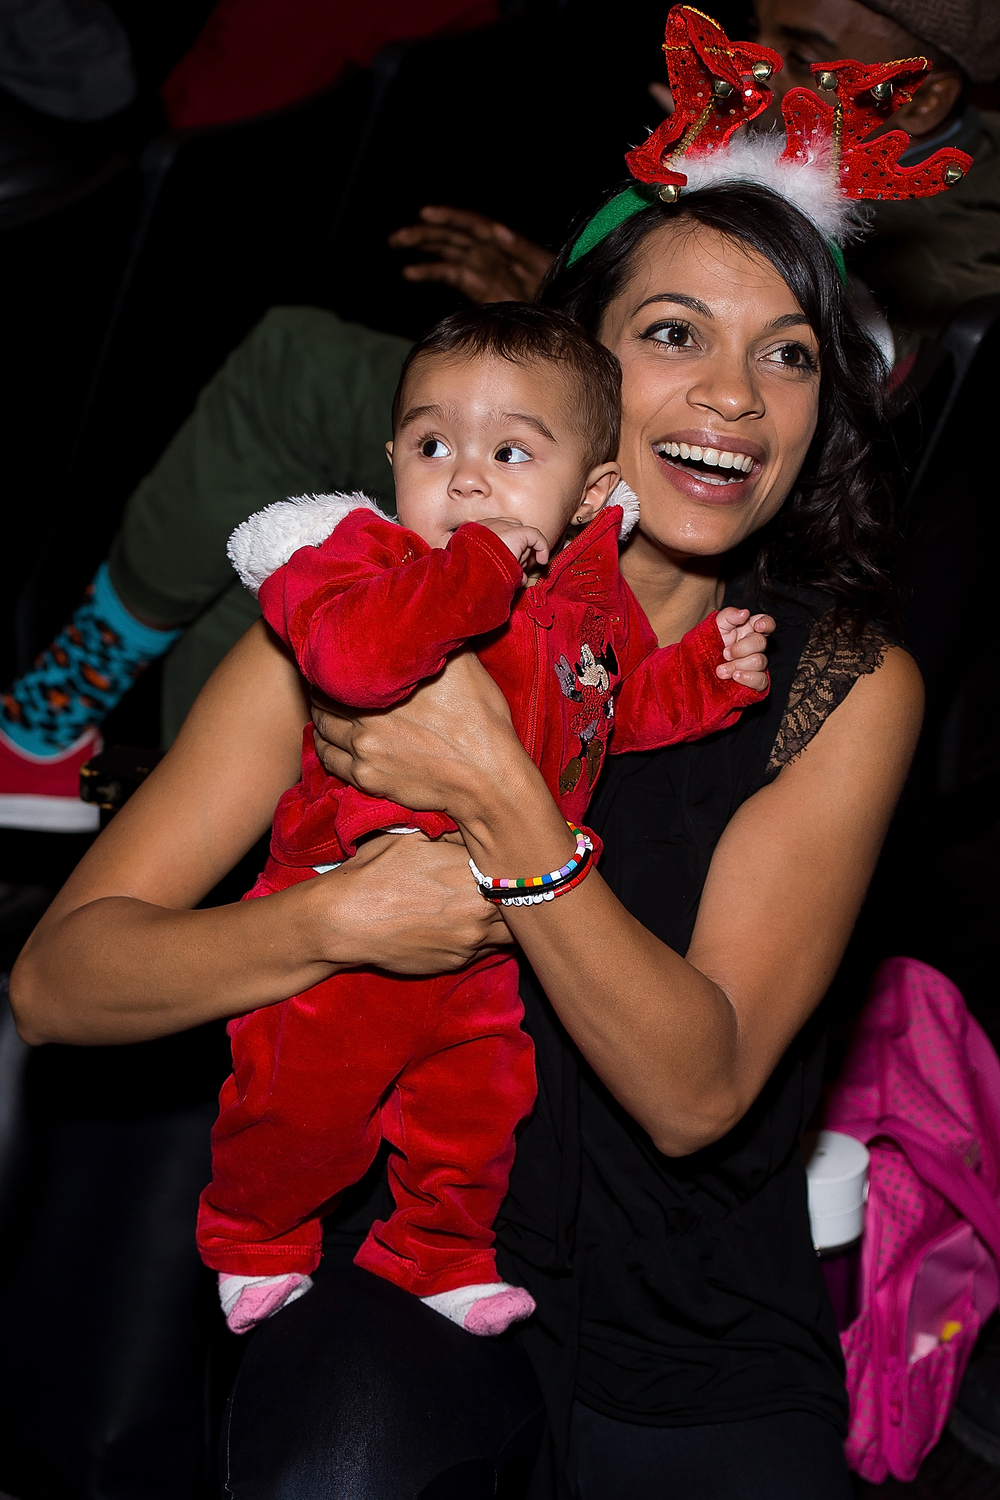 Taken moments before she joined Childhood USA's #EyesWideOpen on stage, Actress Rosario Dawson met one of her newest fans during the West Harlem Community Holiday Celebration and Toy Giveaway.